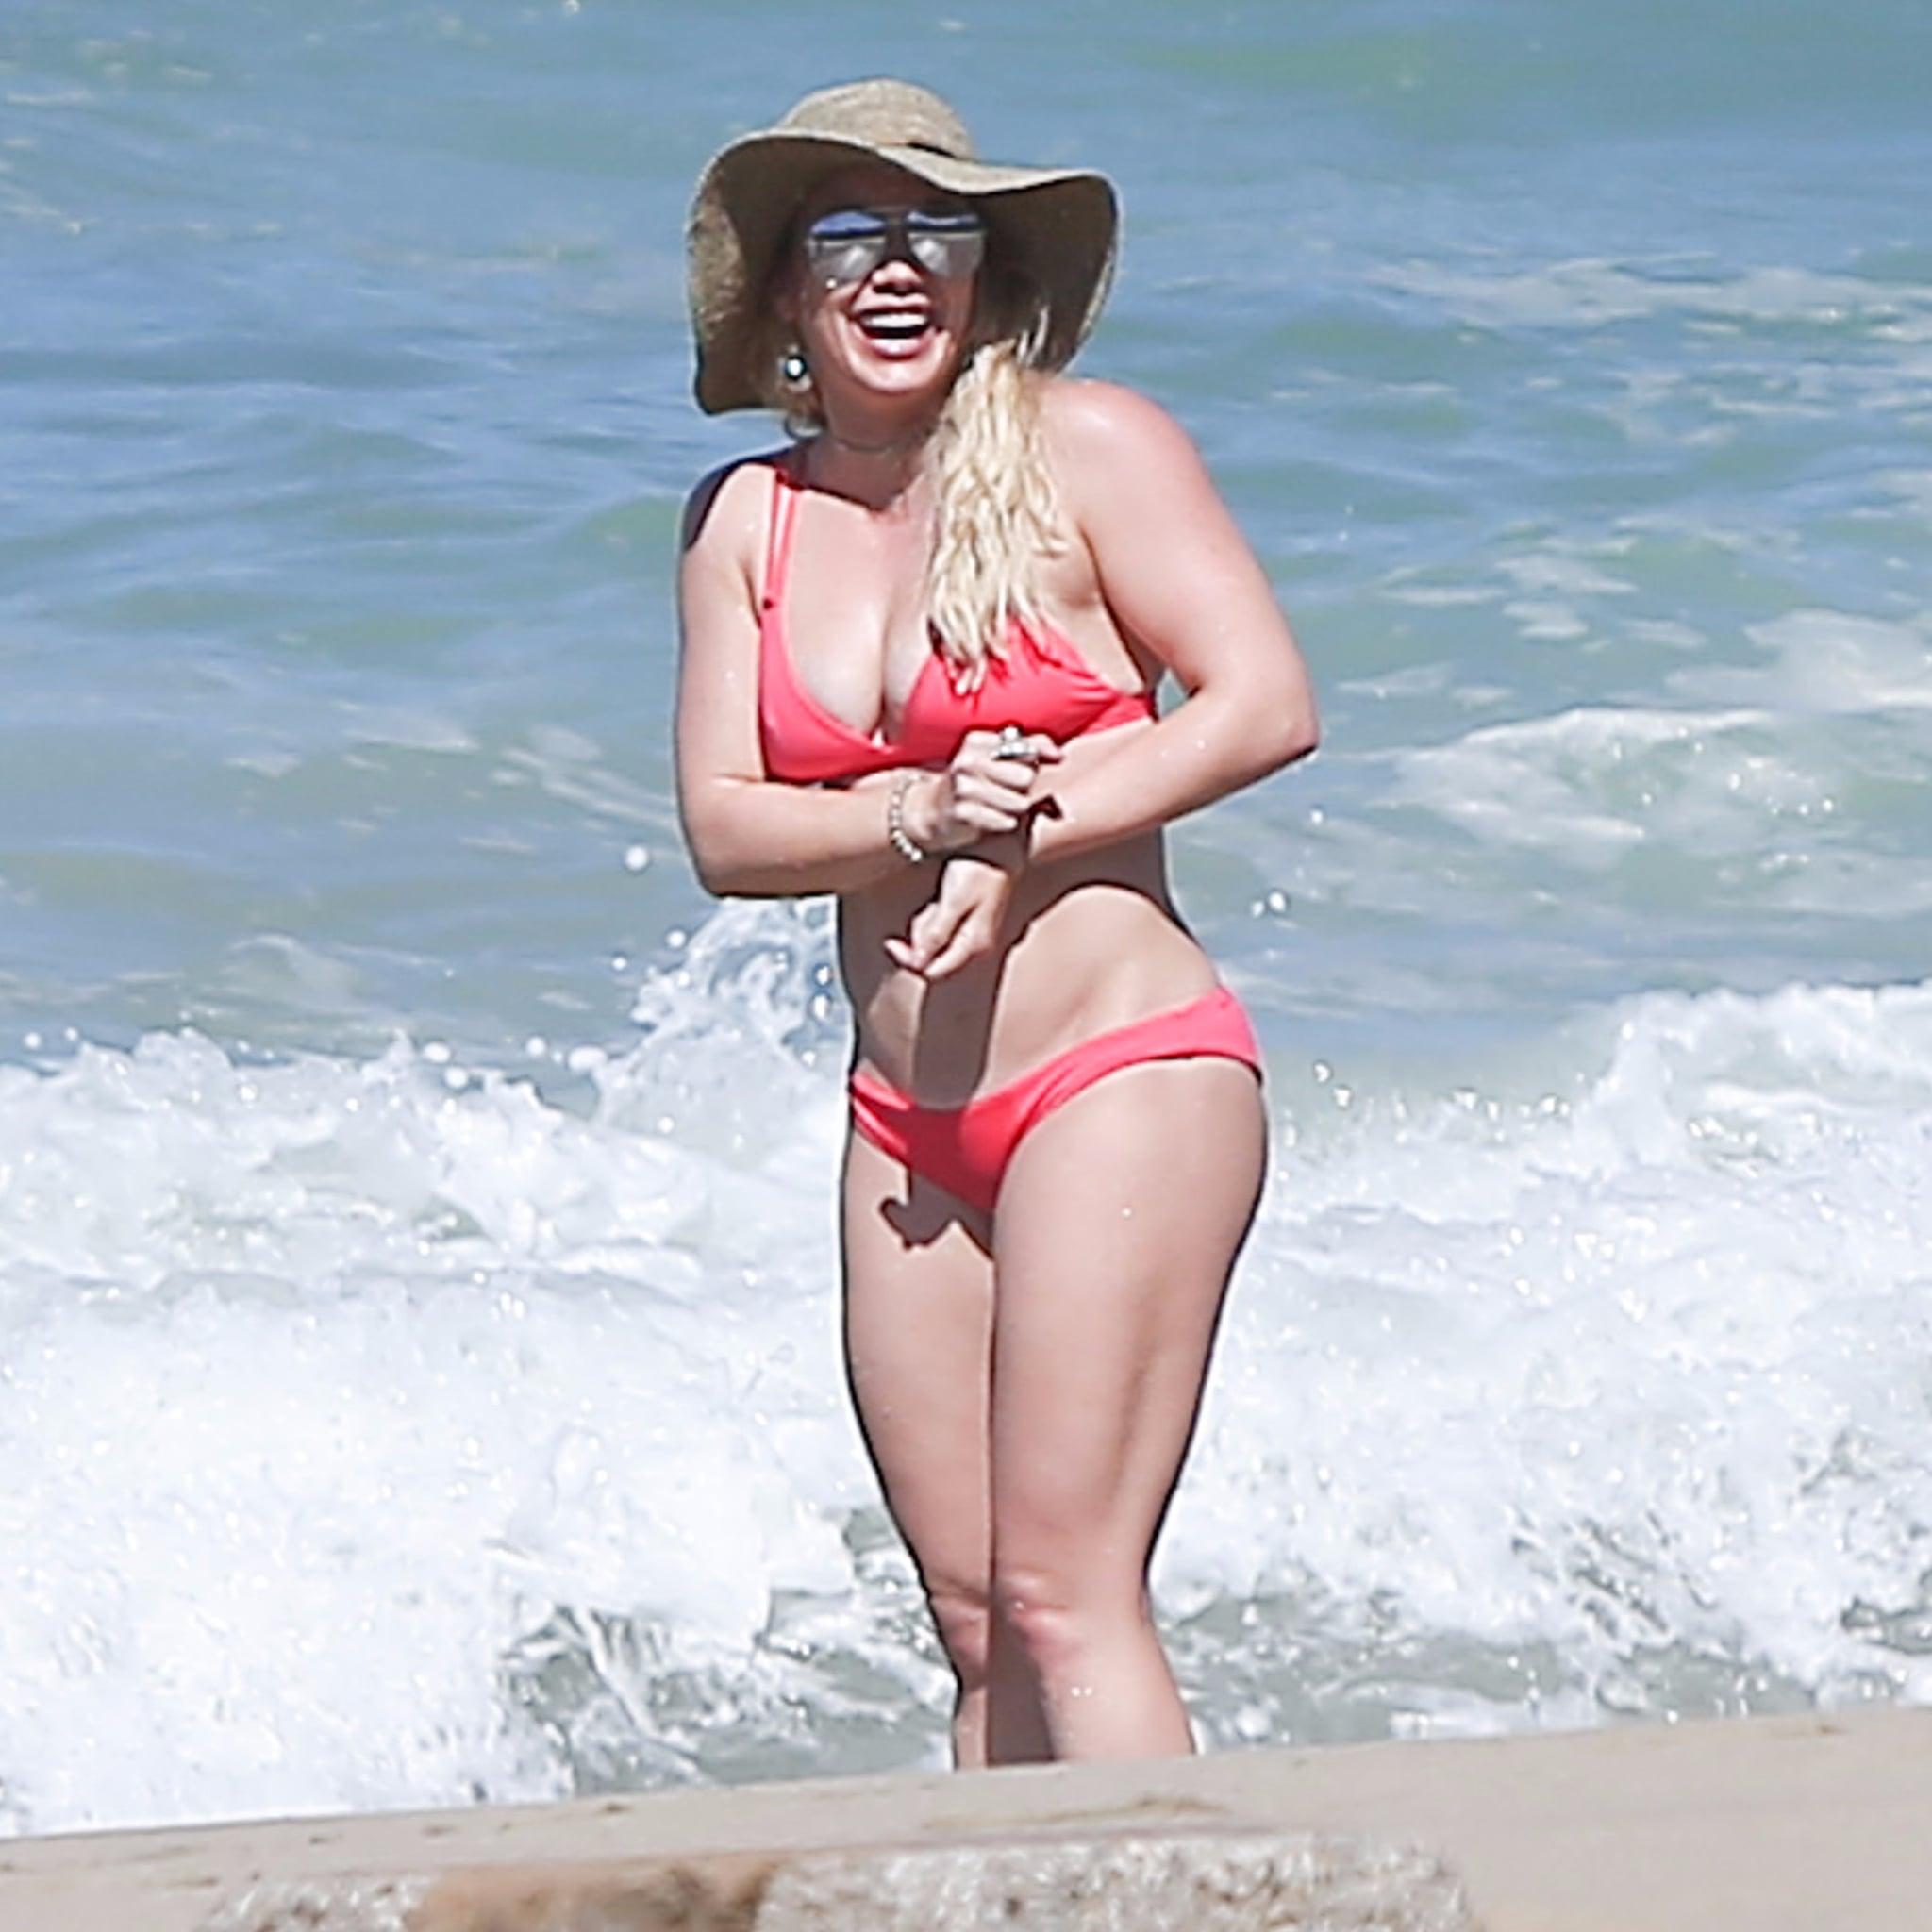 Hilary Duff Bikini Pictures in Hawaii